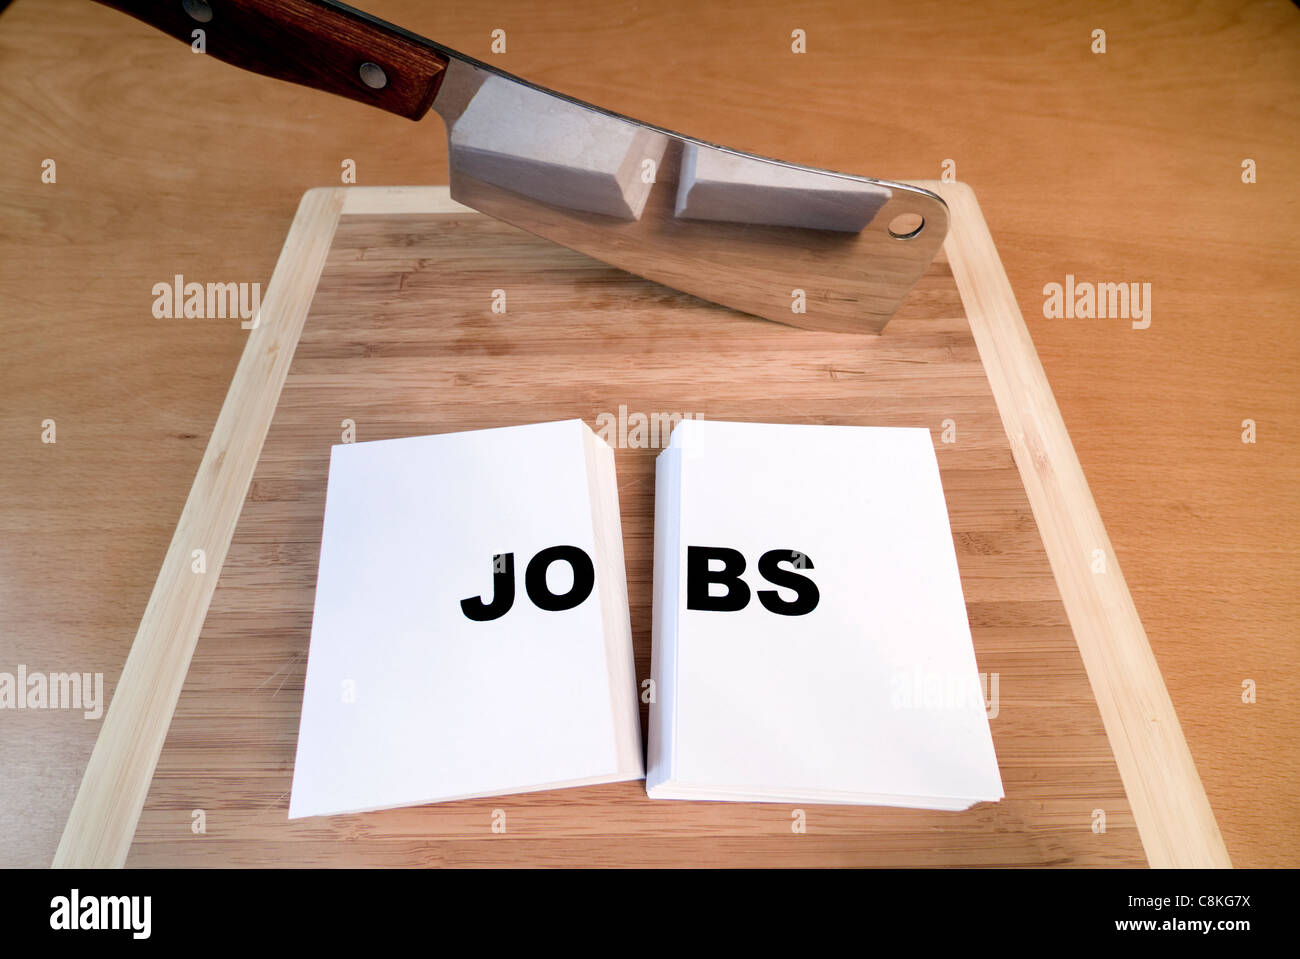 Cutting jobs with a cleaver and cutting board. - Stock Image